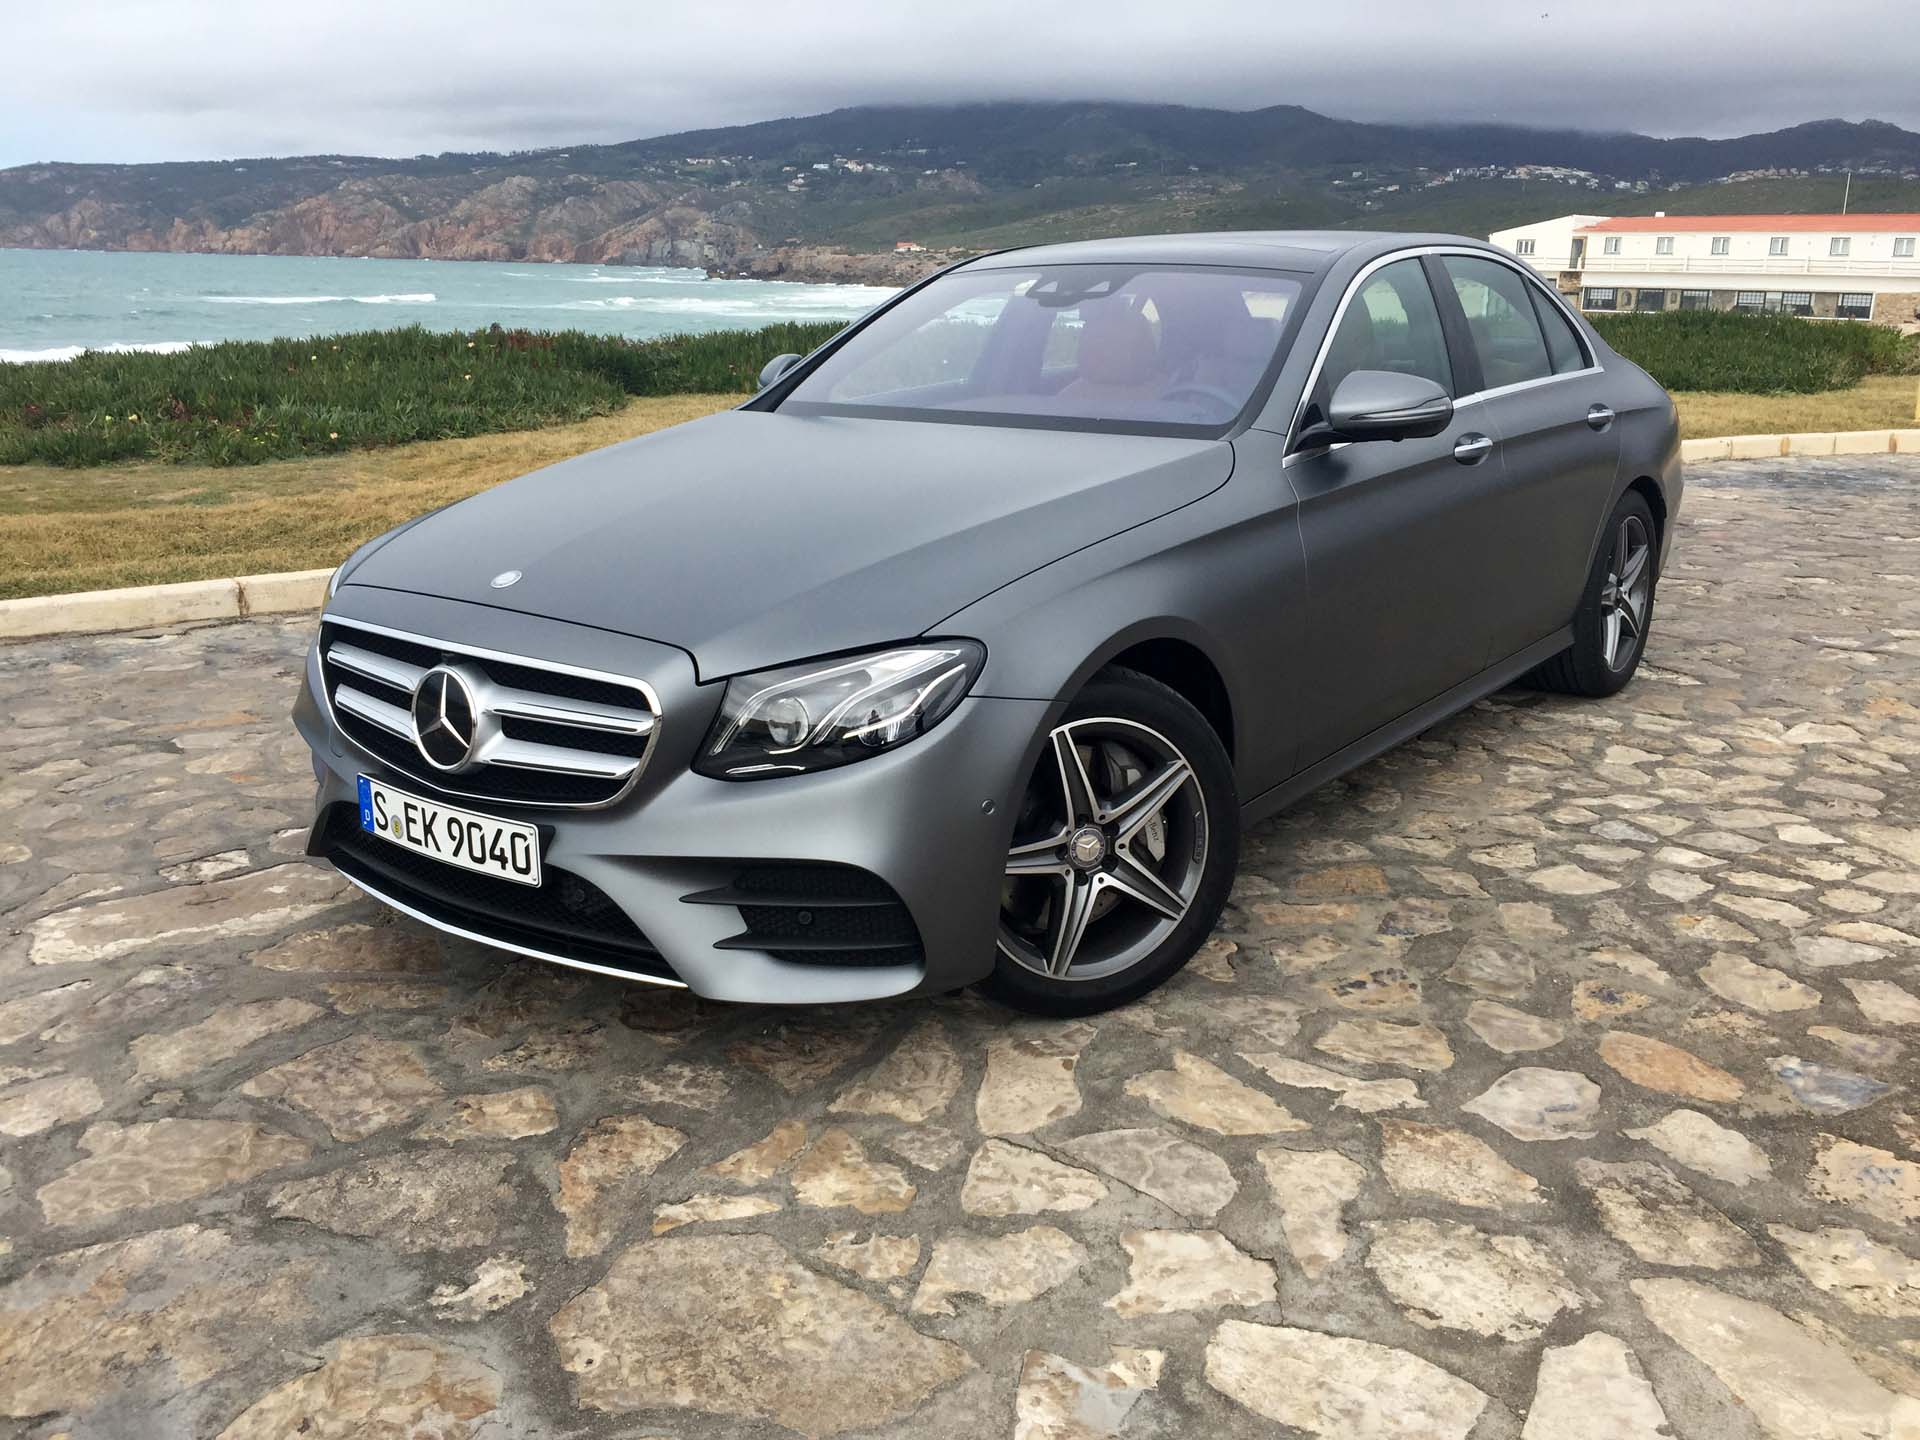 2017 mercedes benz e class. Cars Review. Best American Auto & Cars Review